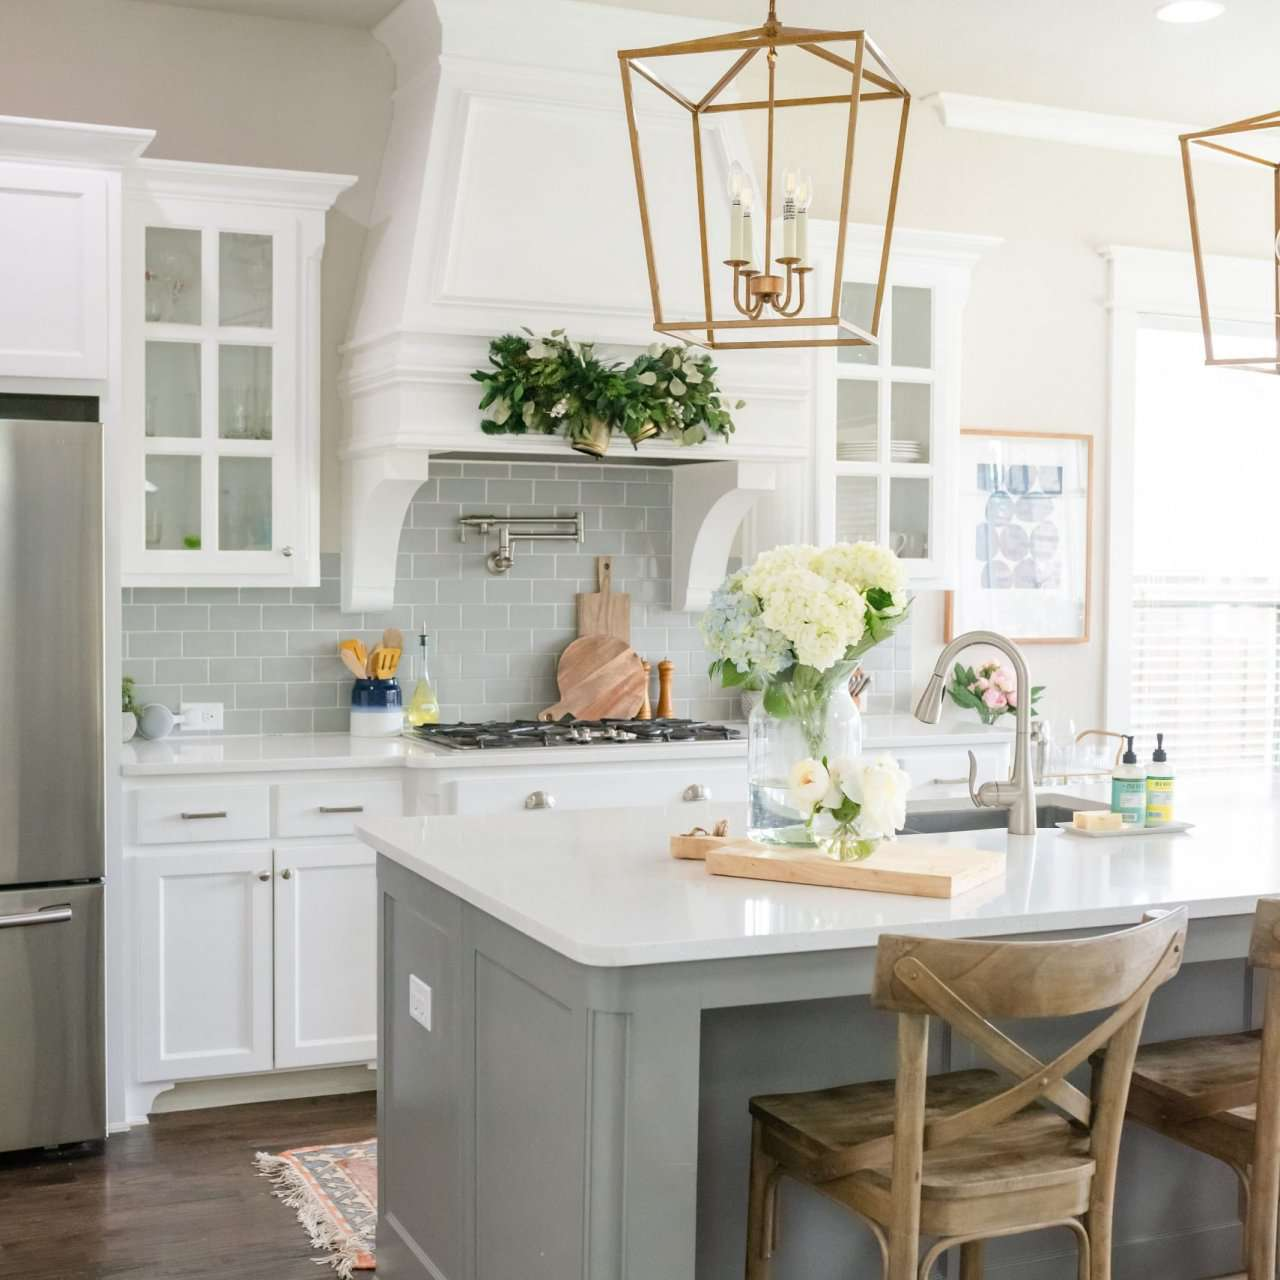 Traditional kitchen with oversized brass lantern pendant over island